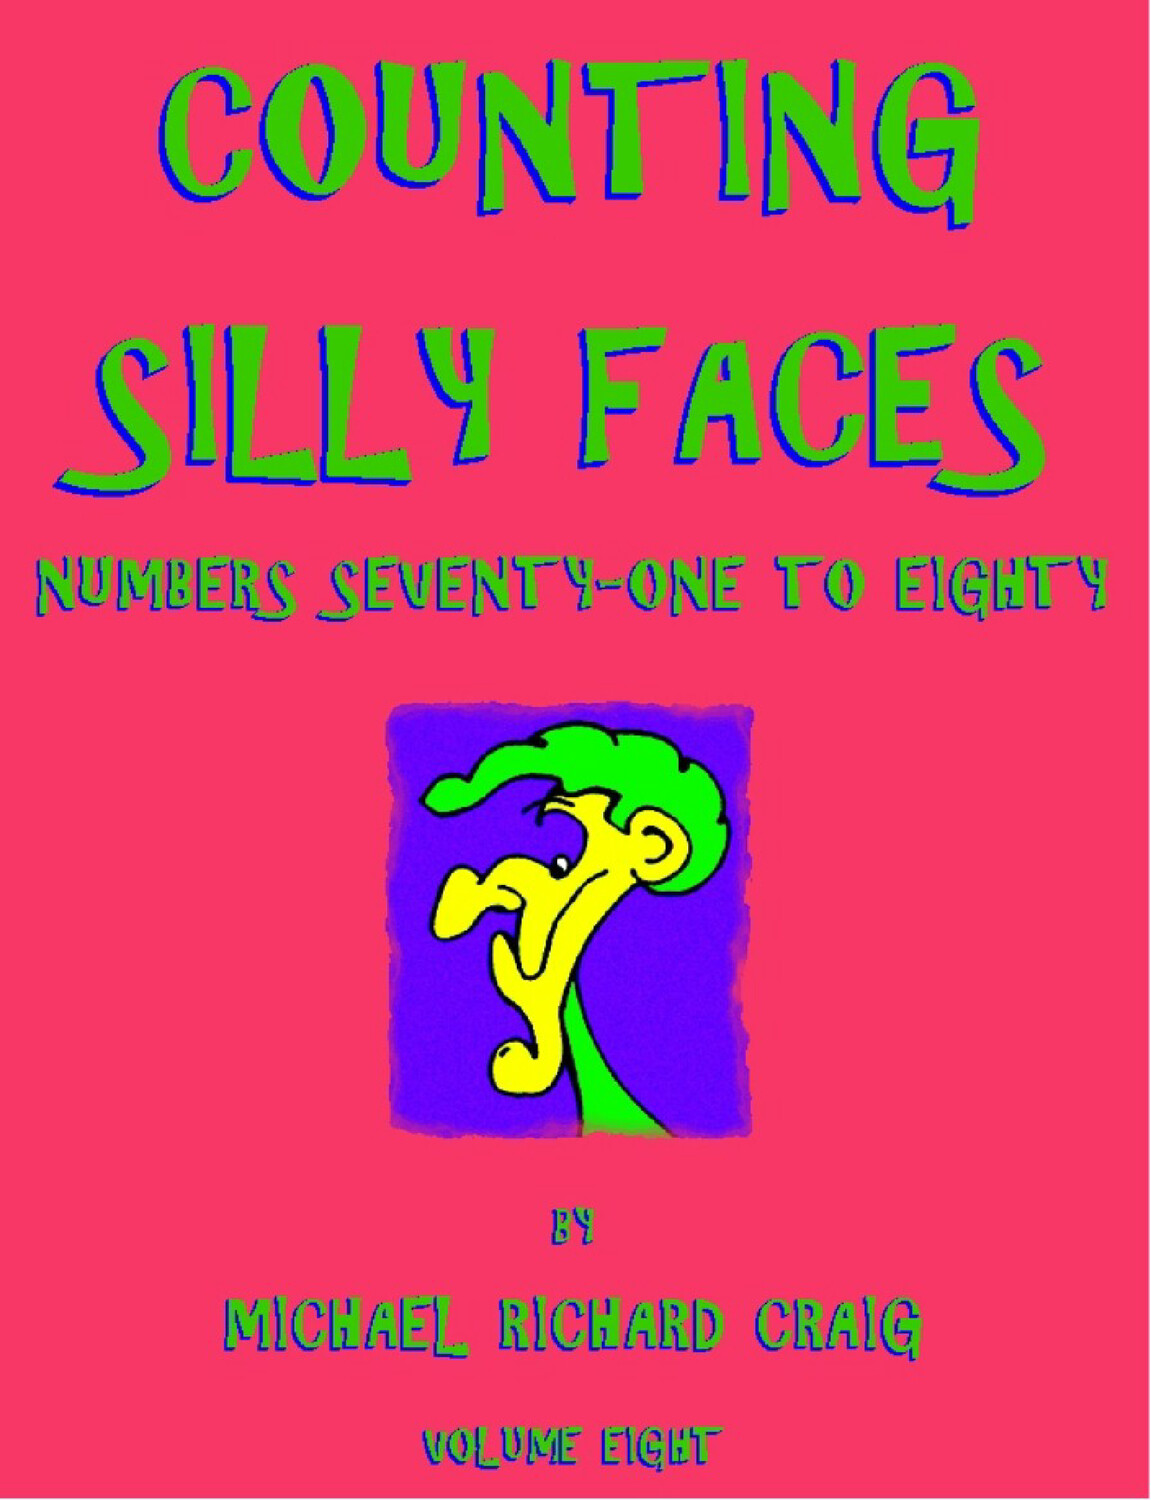 Counting Silly Faces E-Flipbook Numbers 71-80